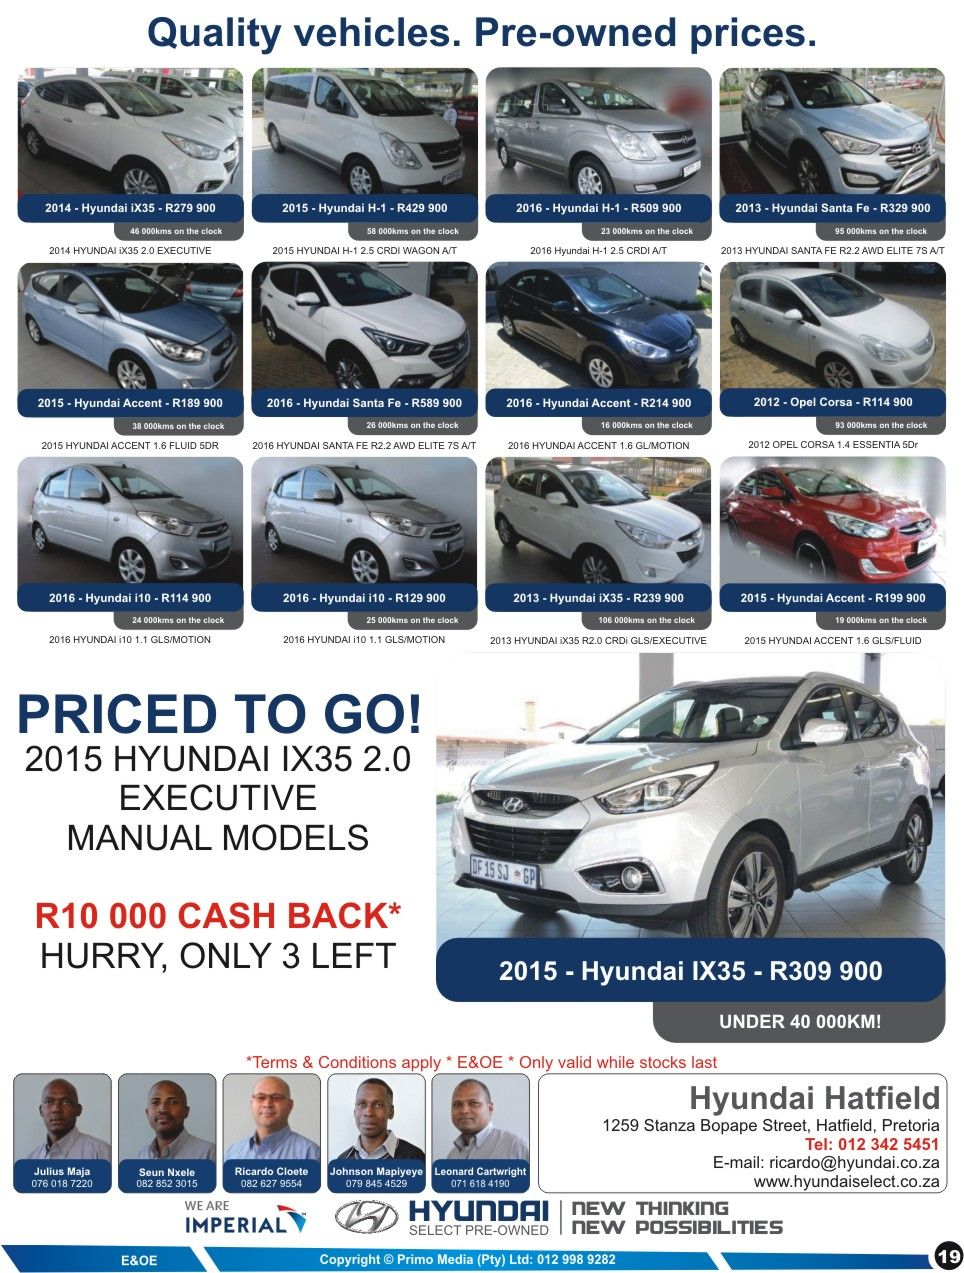 Quality Vehicles D Pre Owned Prices D Imperial Hyundai Hatfield Pre Owned Dont Miss Out Call Us Now For More Inform Hyundai Hyundai Accent Opel Corsa